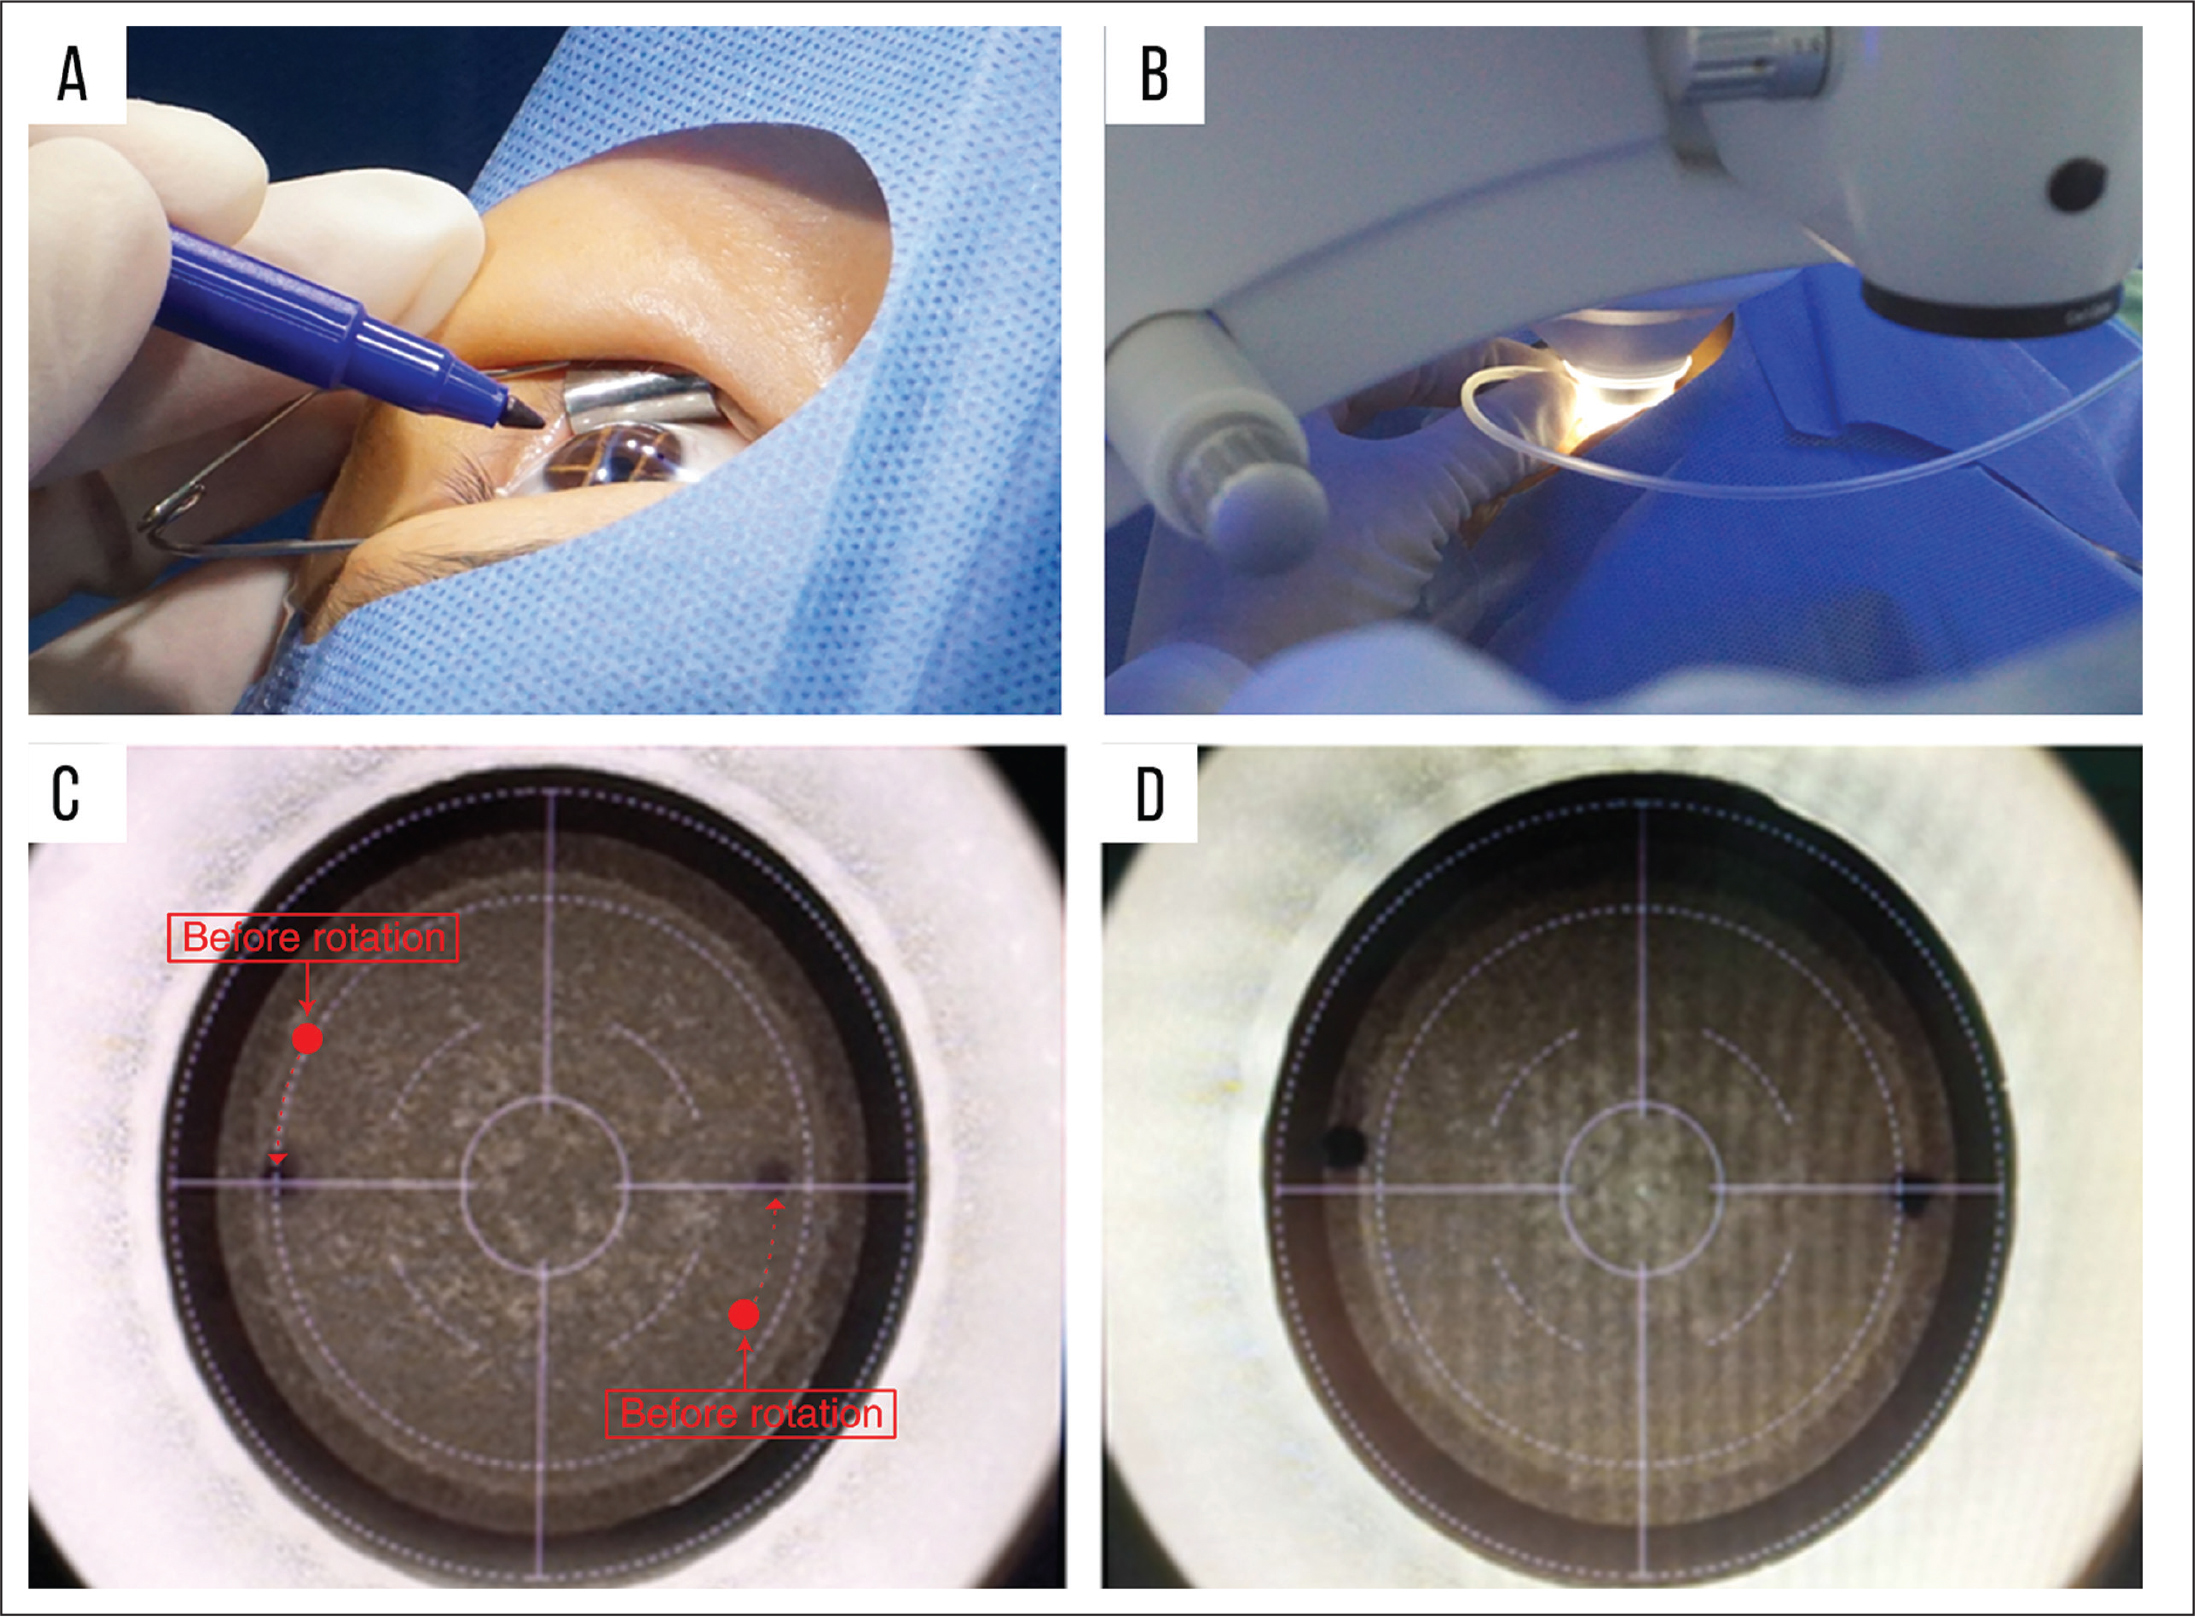 (A) Two tiny points were marked on the limbus extending 1.5 mm toward the center of the cornea, along the horizontal projection line of the AMARIS platform (SCHWIND eye-tech-solutions, Kleinostheim, Germany), using a skin marker pen. (B) For some eyes in the static cyclotorsion compensation (SCC) group, the cone was gently rotated until the horizontal marks were parallel with the 0° to 180° axis of the reticule. (C) VisuMax (Carl Zeiss Meditec, Jena, Germany) screenshots of an eye in the SCC group. The two red dots represent the position of corneal markers before rotation of the cone and the two blue dots are corneal markers after rotation. The dotted arrows represent the trajectory of rotation. (D) VisuMax screenshots of an eye in the control group without any compensation.